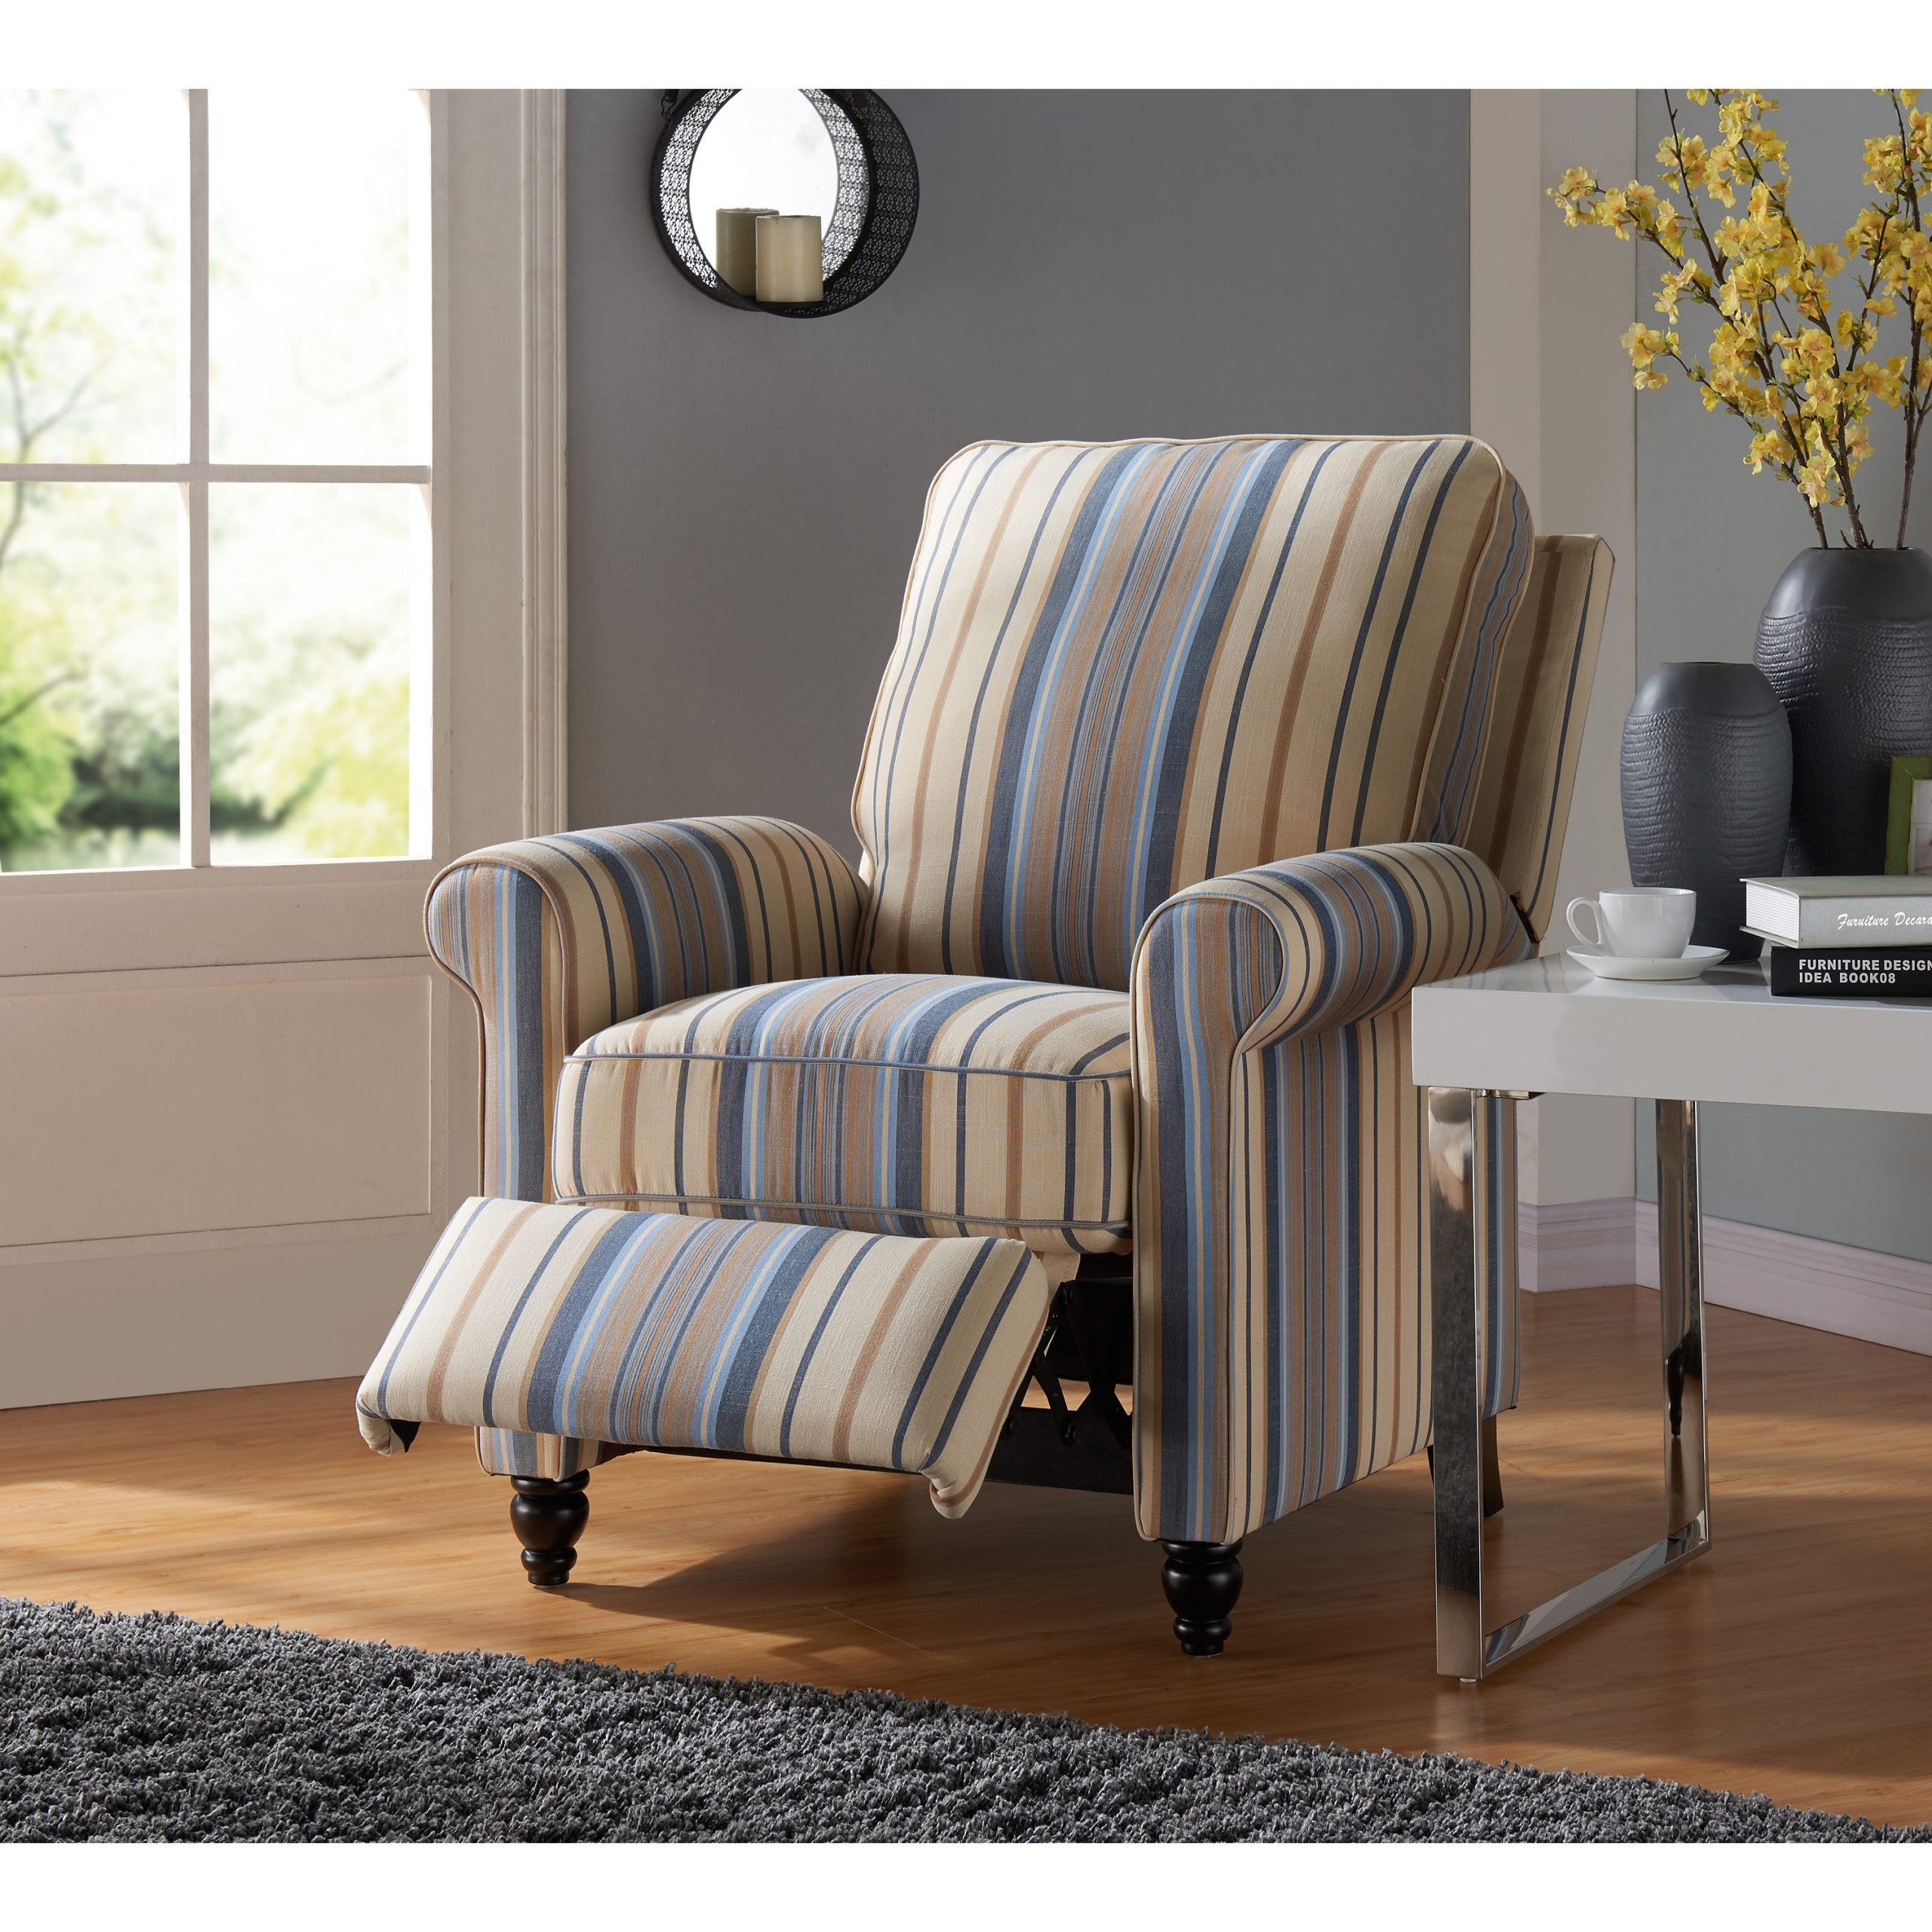 Havenside Home Howard Blue Stripe Push Back Recliner Chair Intended For Striped Sofas And Chairs (View 1 of 15)